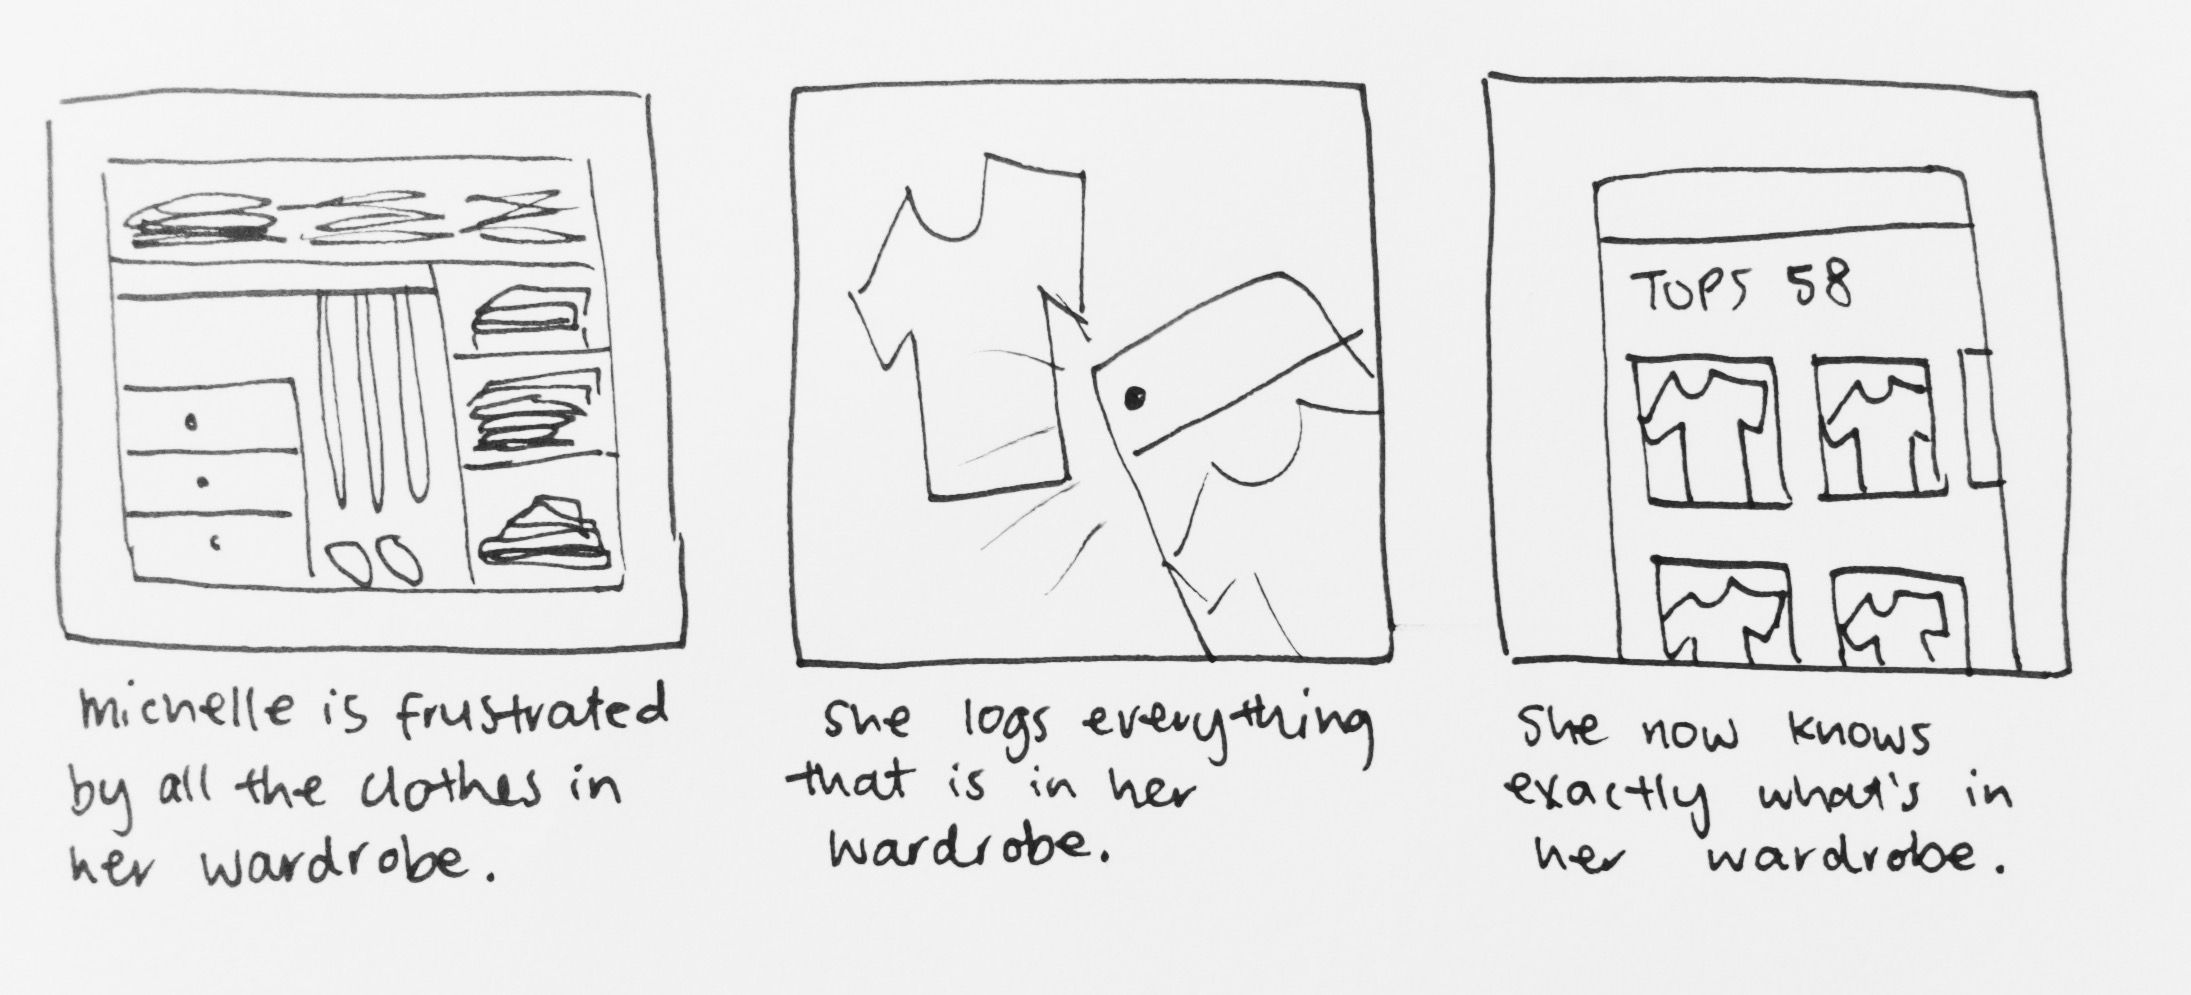 Storyboard sketch based on pain point of not knowing what's in your wardrobe.